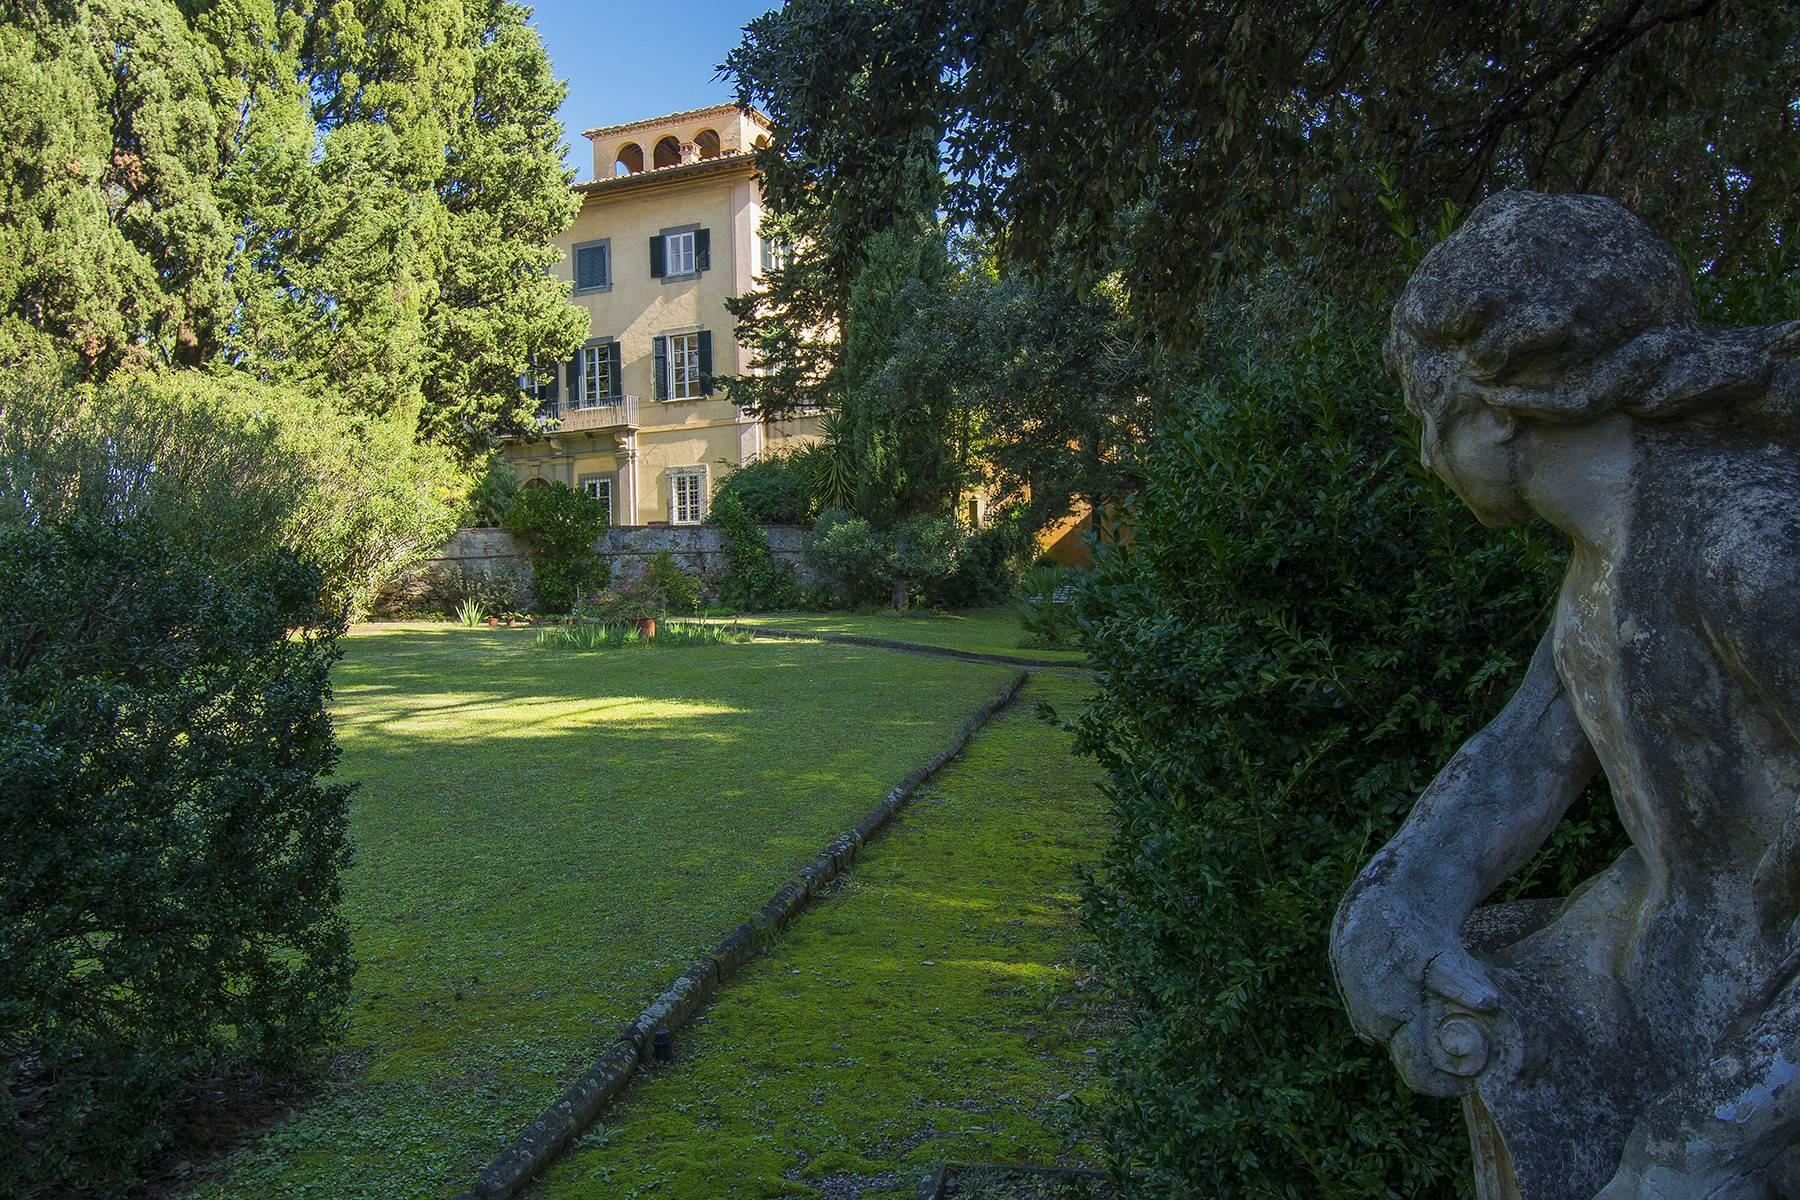 Charming Medicean Villa on the Tuscan hills - 13